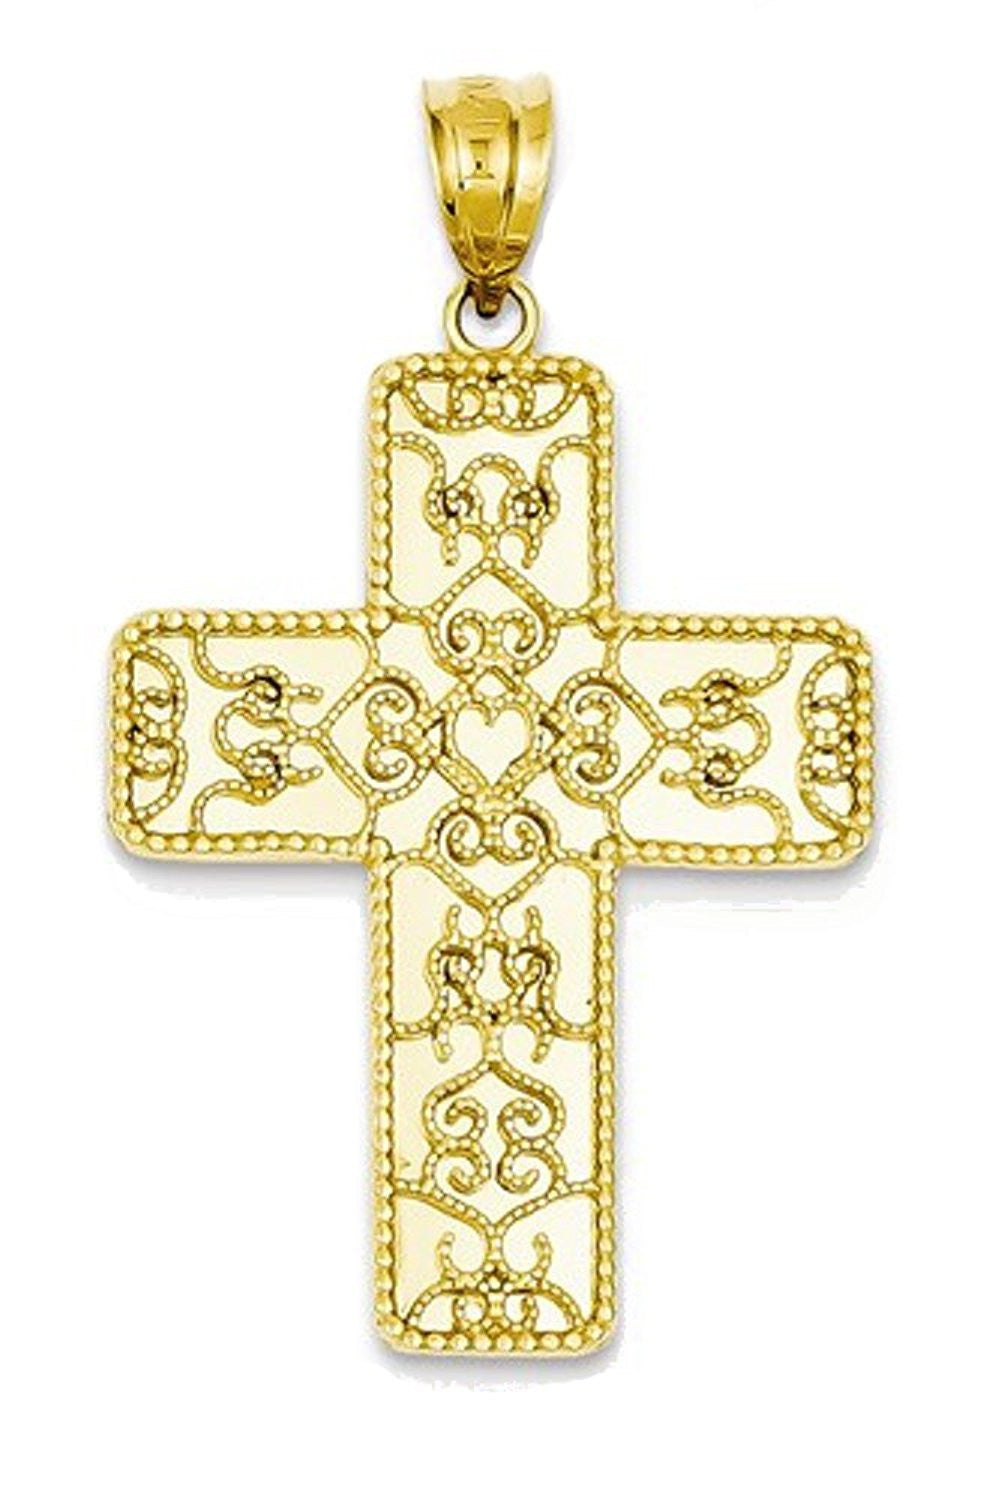 14k Yellow Gold Filigree Cross Pendant Charm